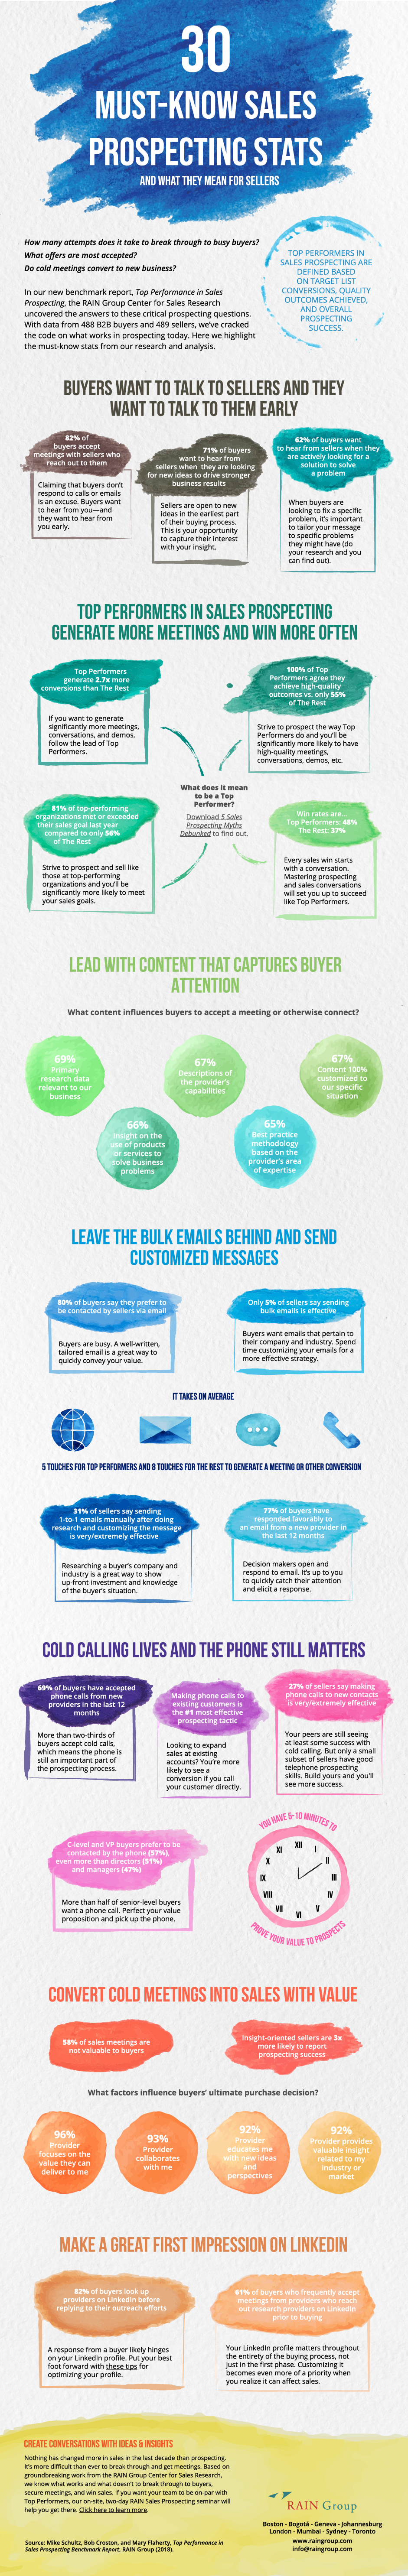 30_Must_Know_Sales_Prospecting_Stats_Infographic